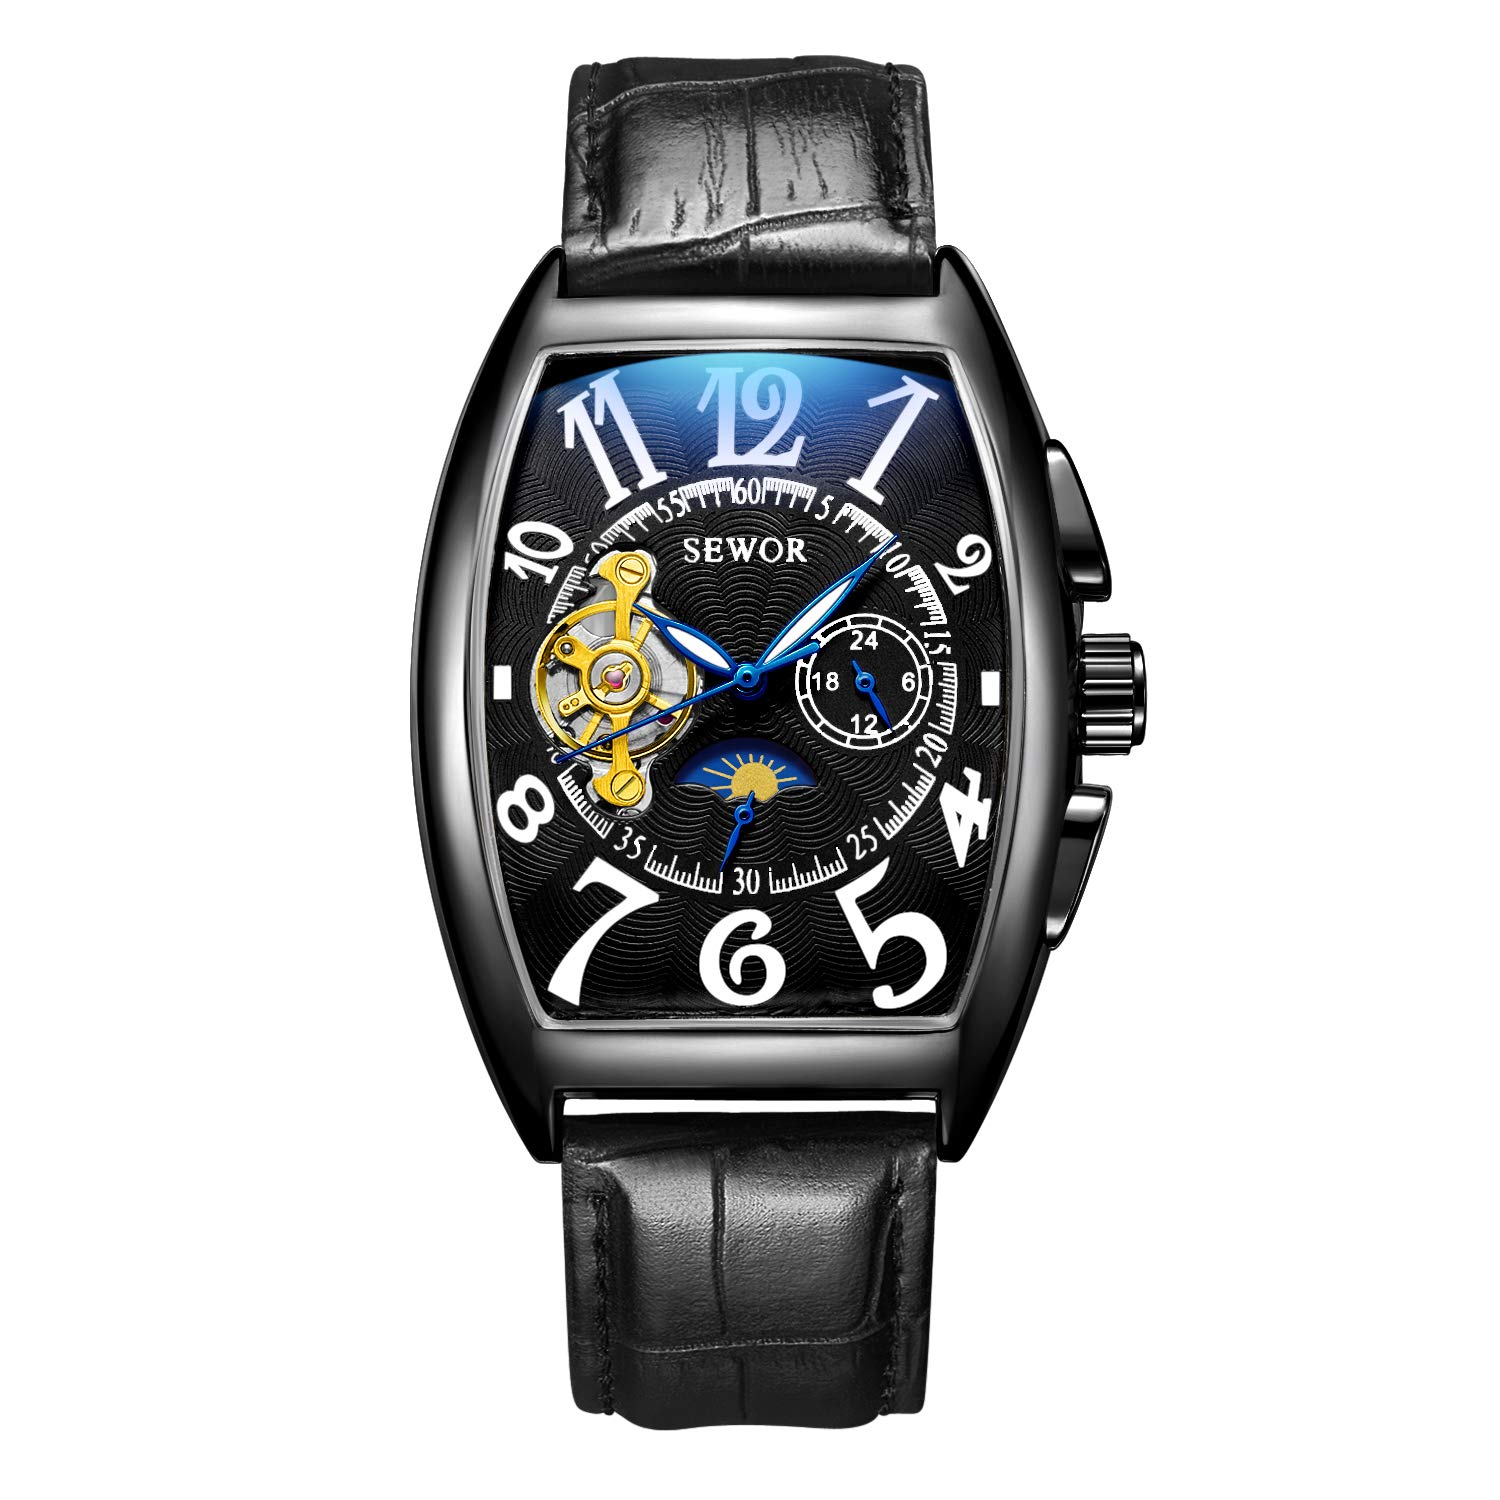 Watches Analytical Cool Brand Fashion Double Tourbillon Mechanical Watches Self-winding Leather Strap Mens Dress Wrist Watch Roman Moon Phase Watch Mechanical Watches